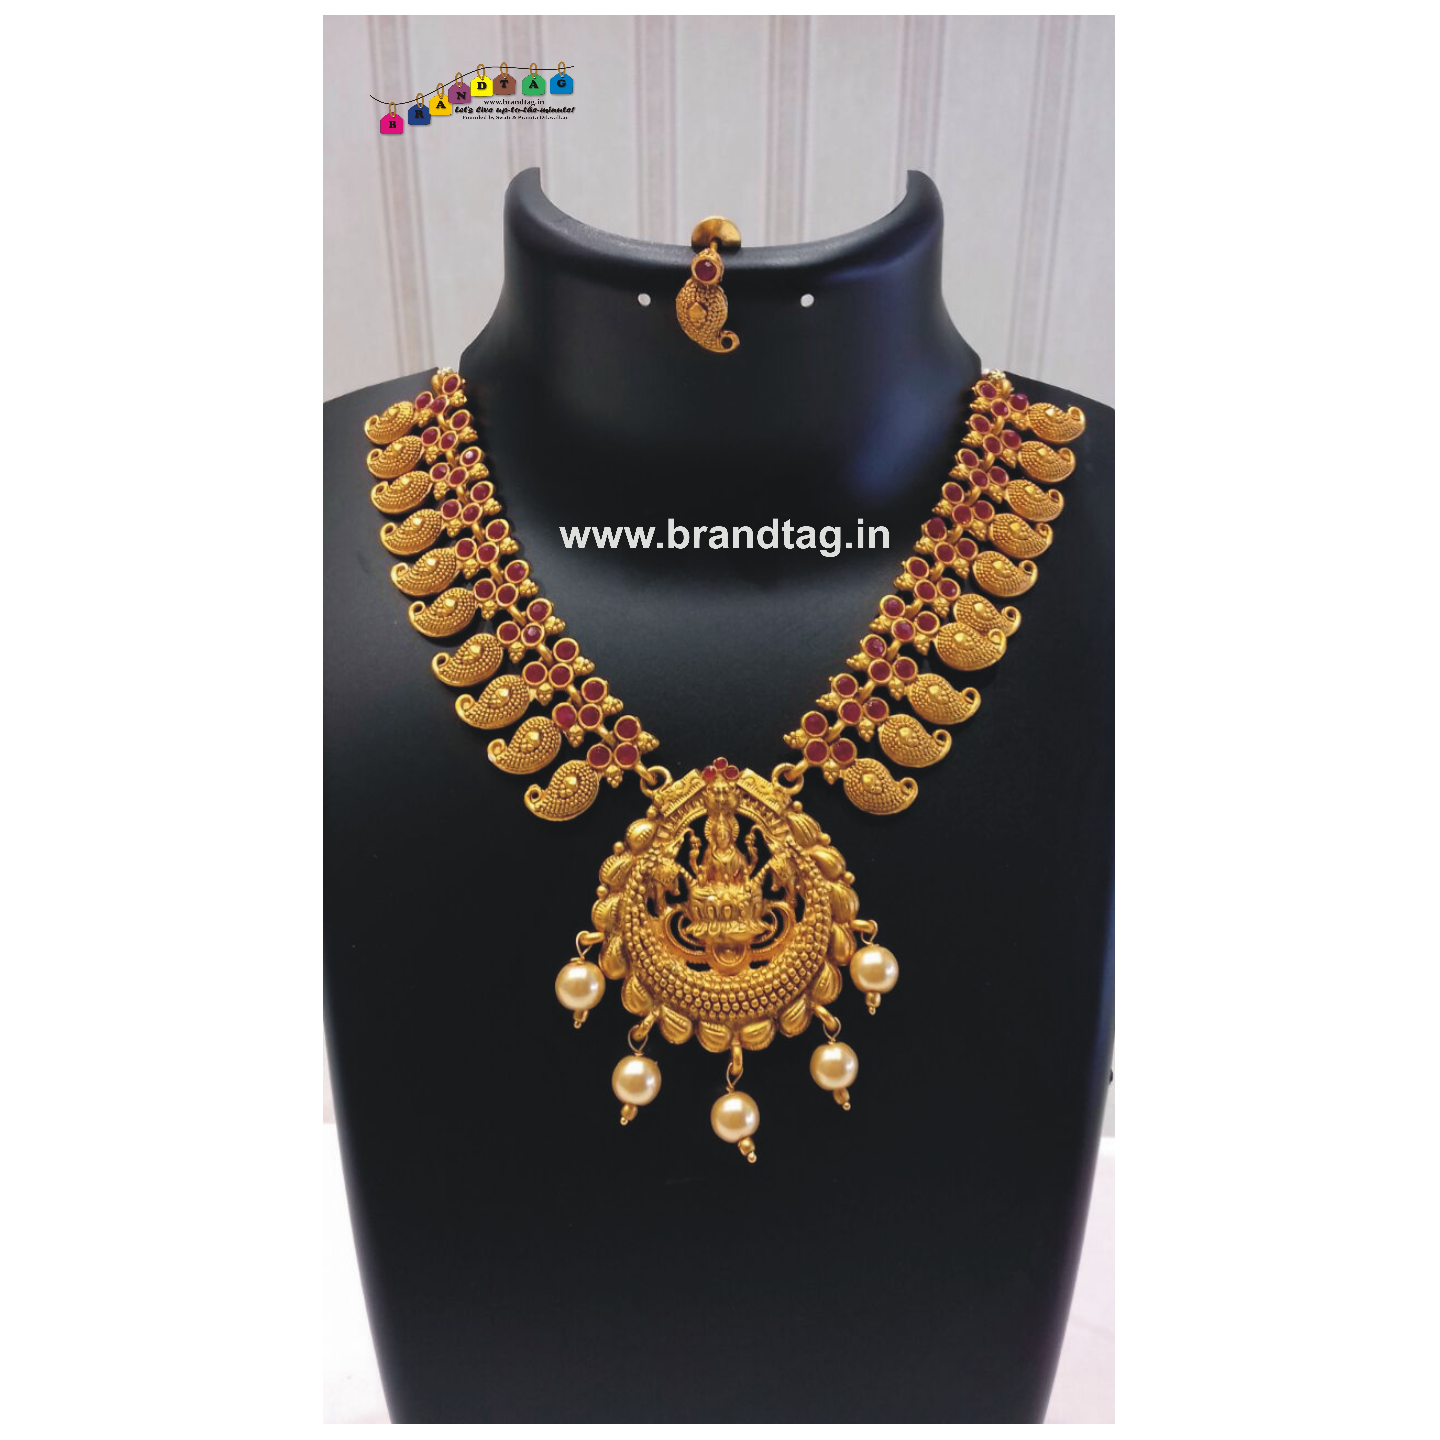 Diwali Collection - Laxmi Maa Golden Necklace set!